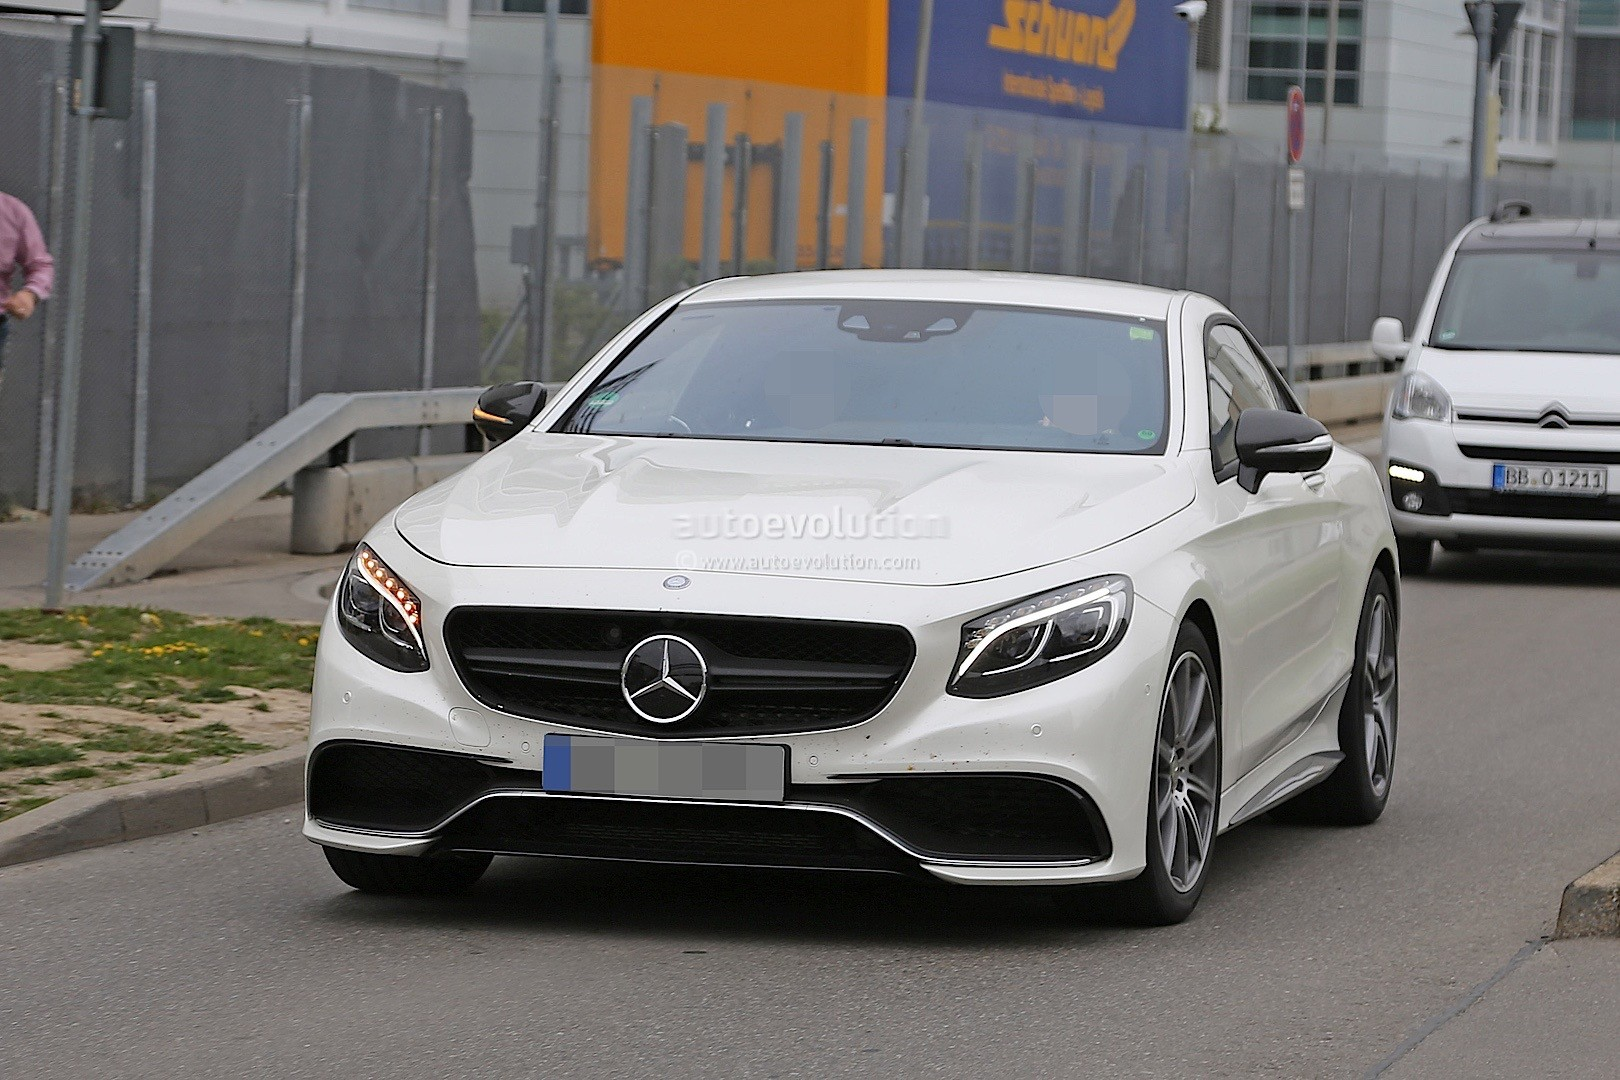 2021 - [Mercedes] SL [R232] What-mercedes-model-is-hiding-under-the-mock-up-bodywork-of-this-s63-coupe_3